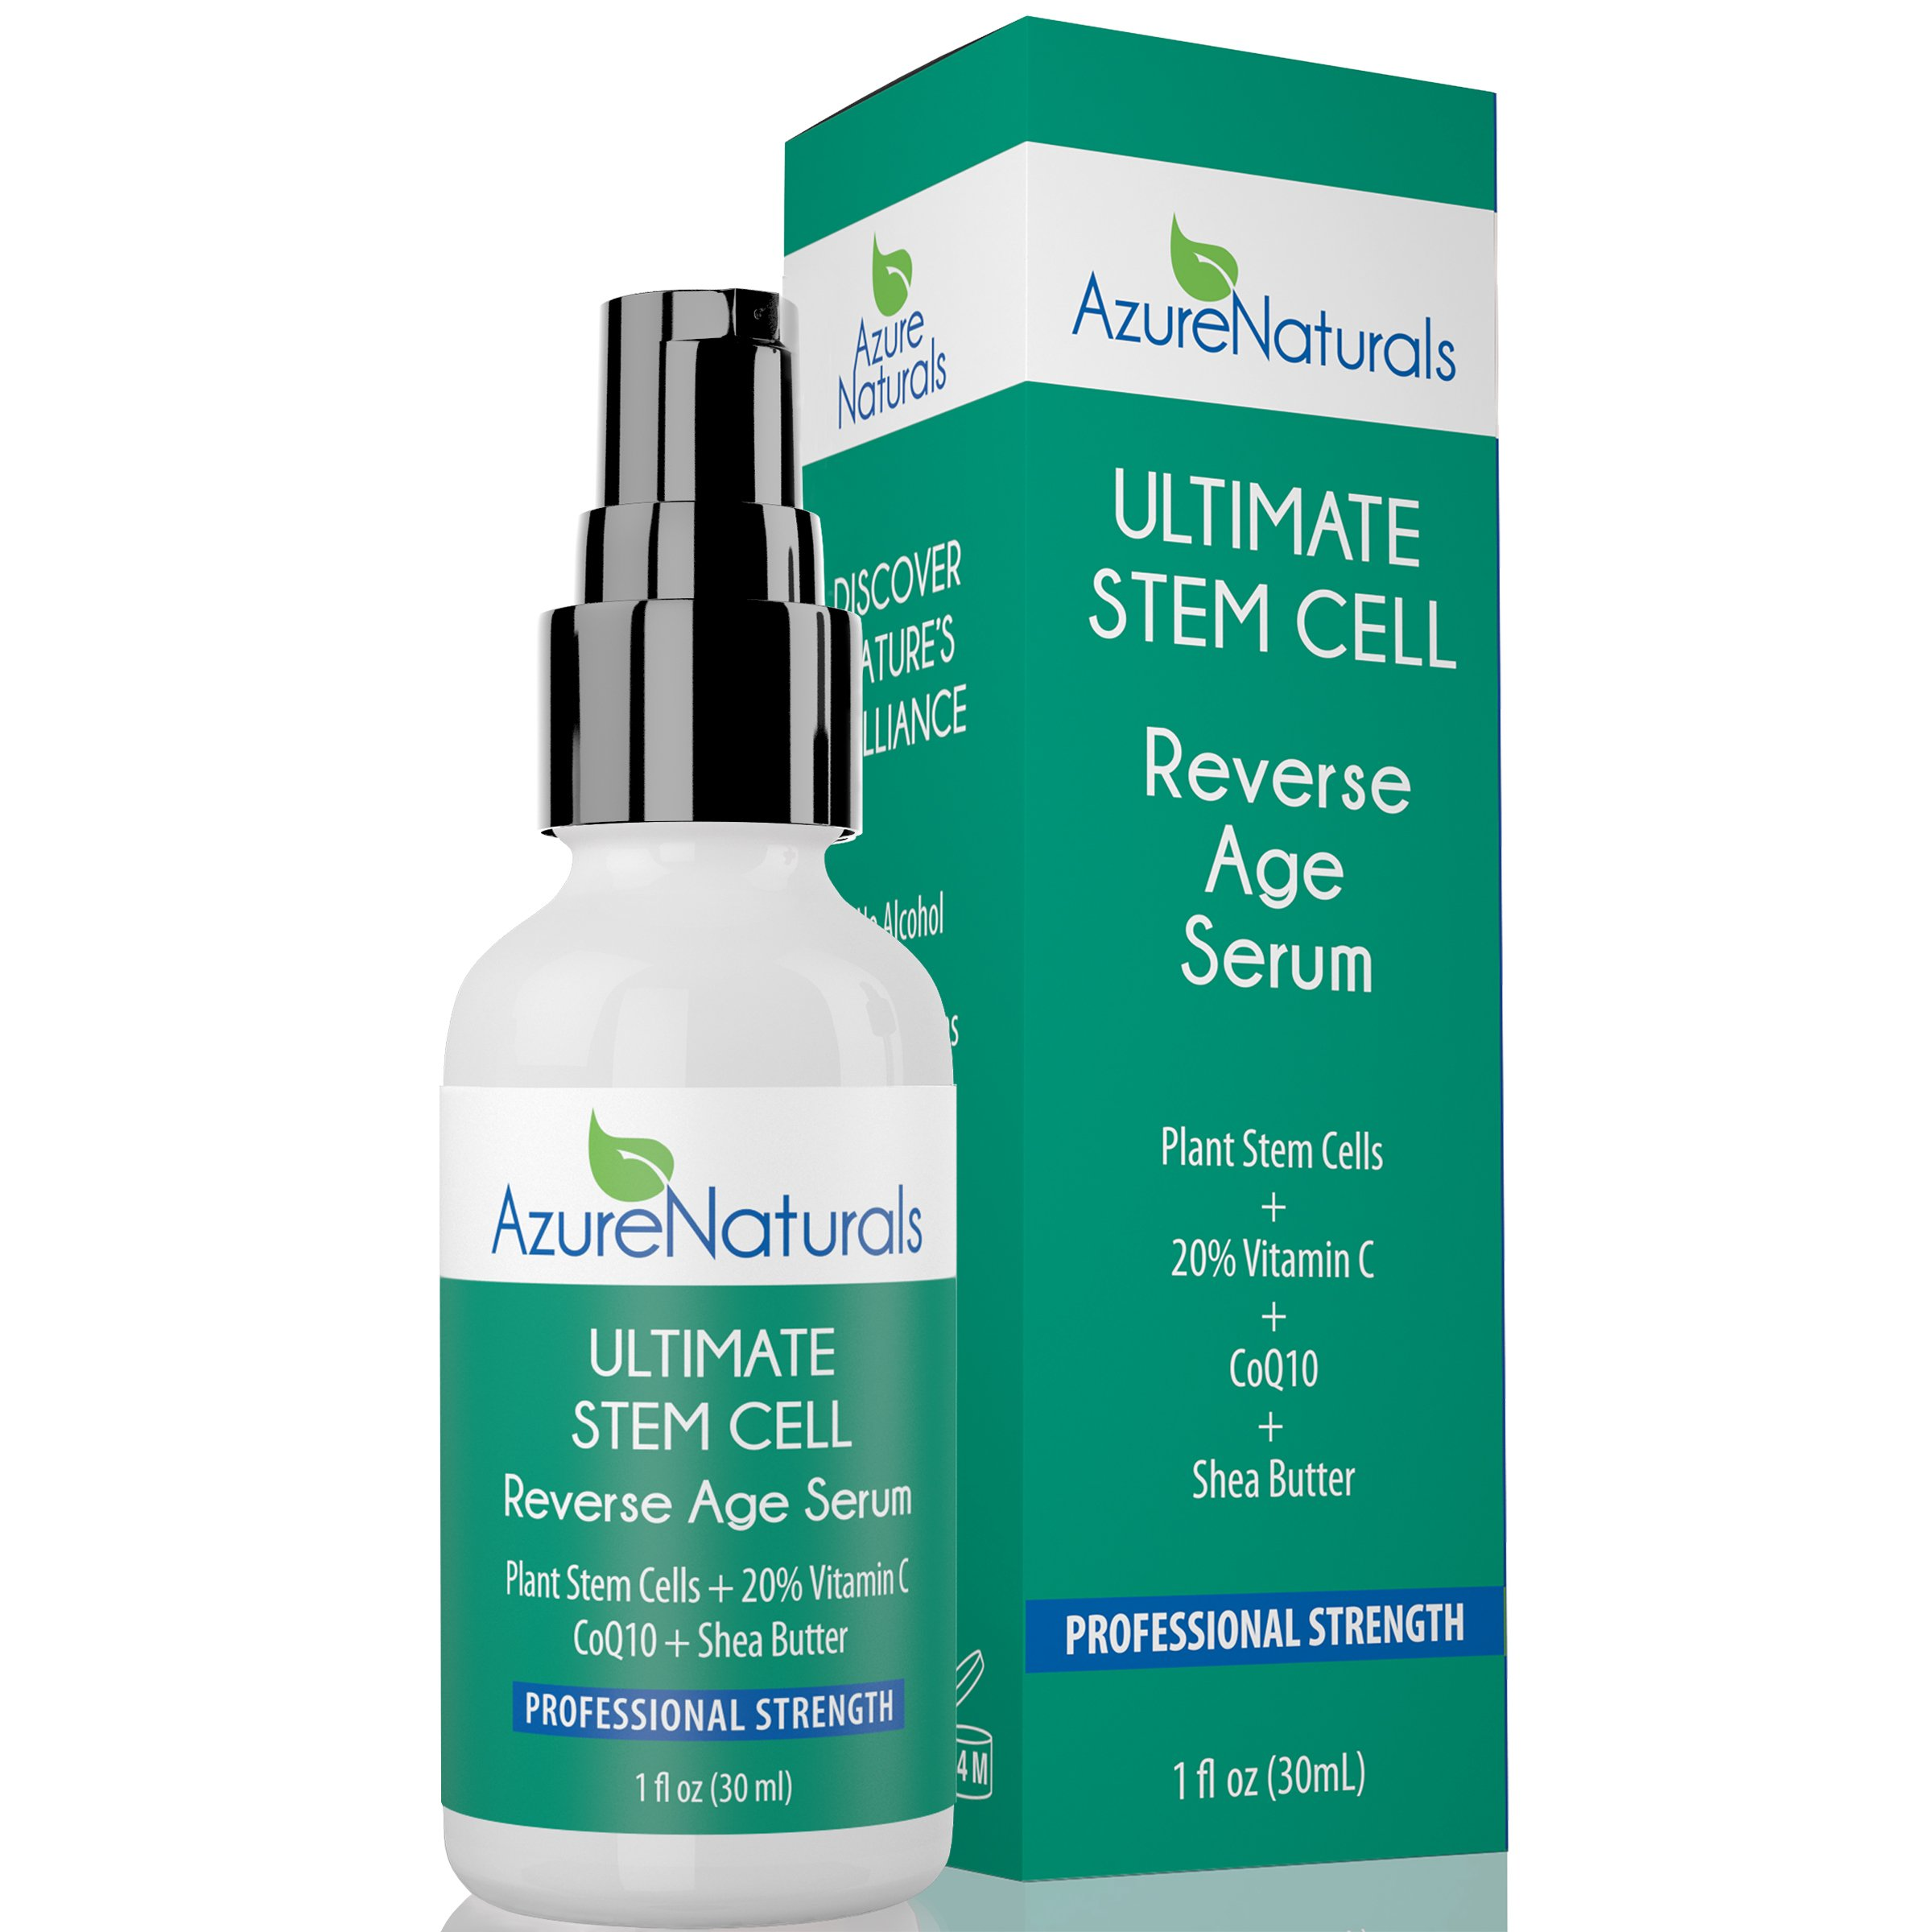 ULTIMATE REVERSE AGE Serum 20% Vitamin C + Plant Stem Cells + Tumeric + CoQ10 + Shea Butter